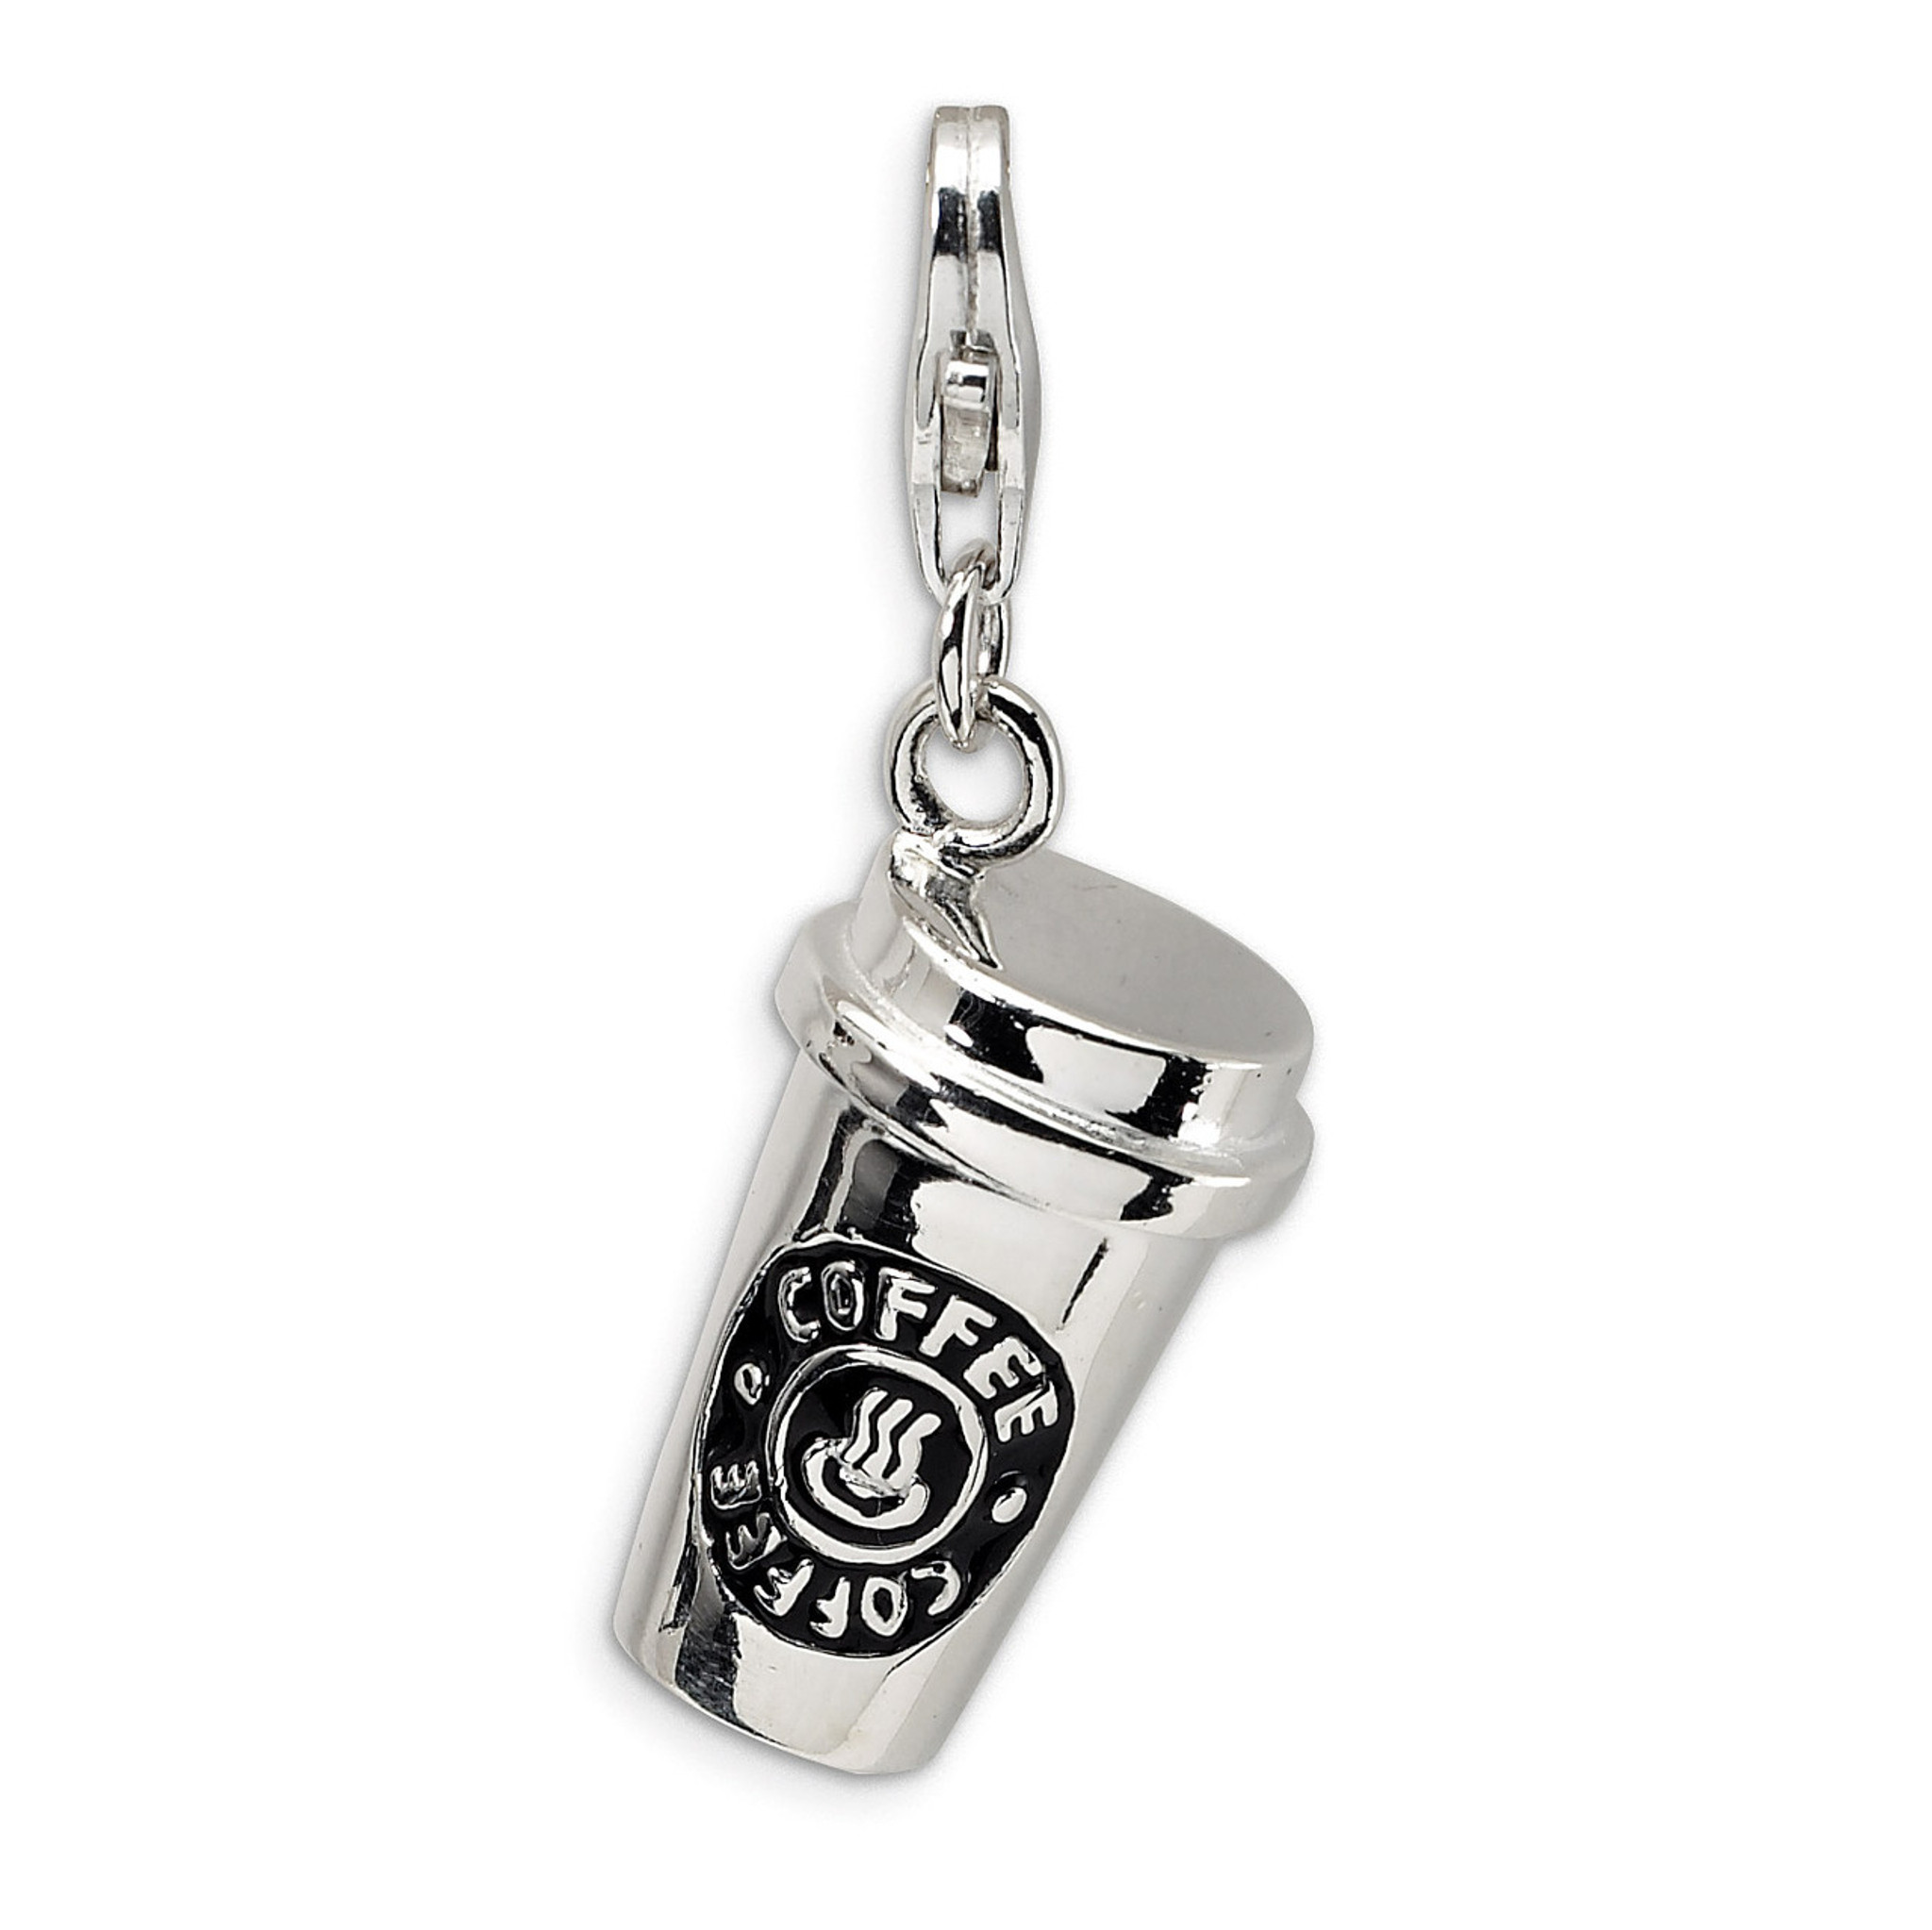 3-D Enameled To Go Coffee Cup Charm Sterling Silver by ... - photo#21